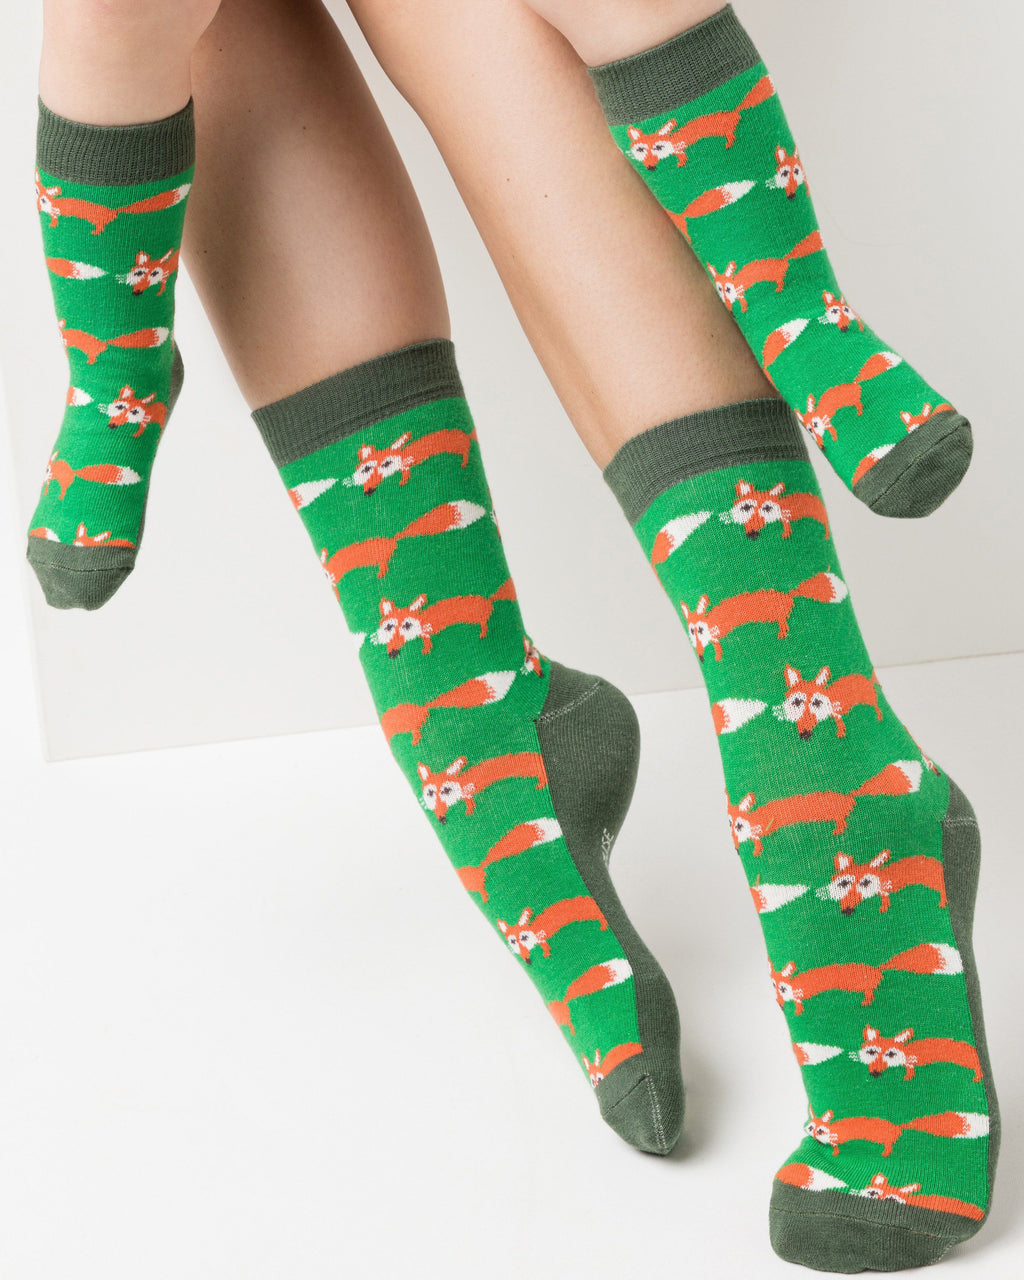 variant_4 | EN Dark Green Socks with Print Kids | DE Dunkelgrüne Socken mit Print Kinder